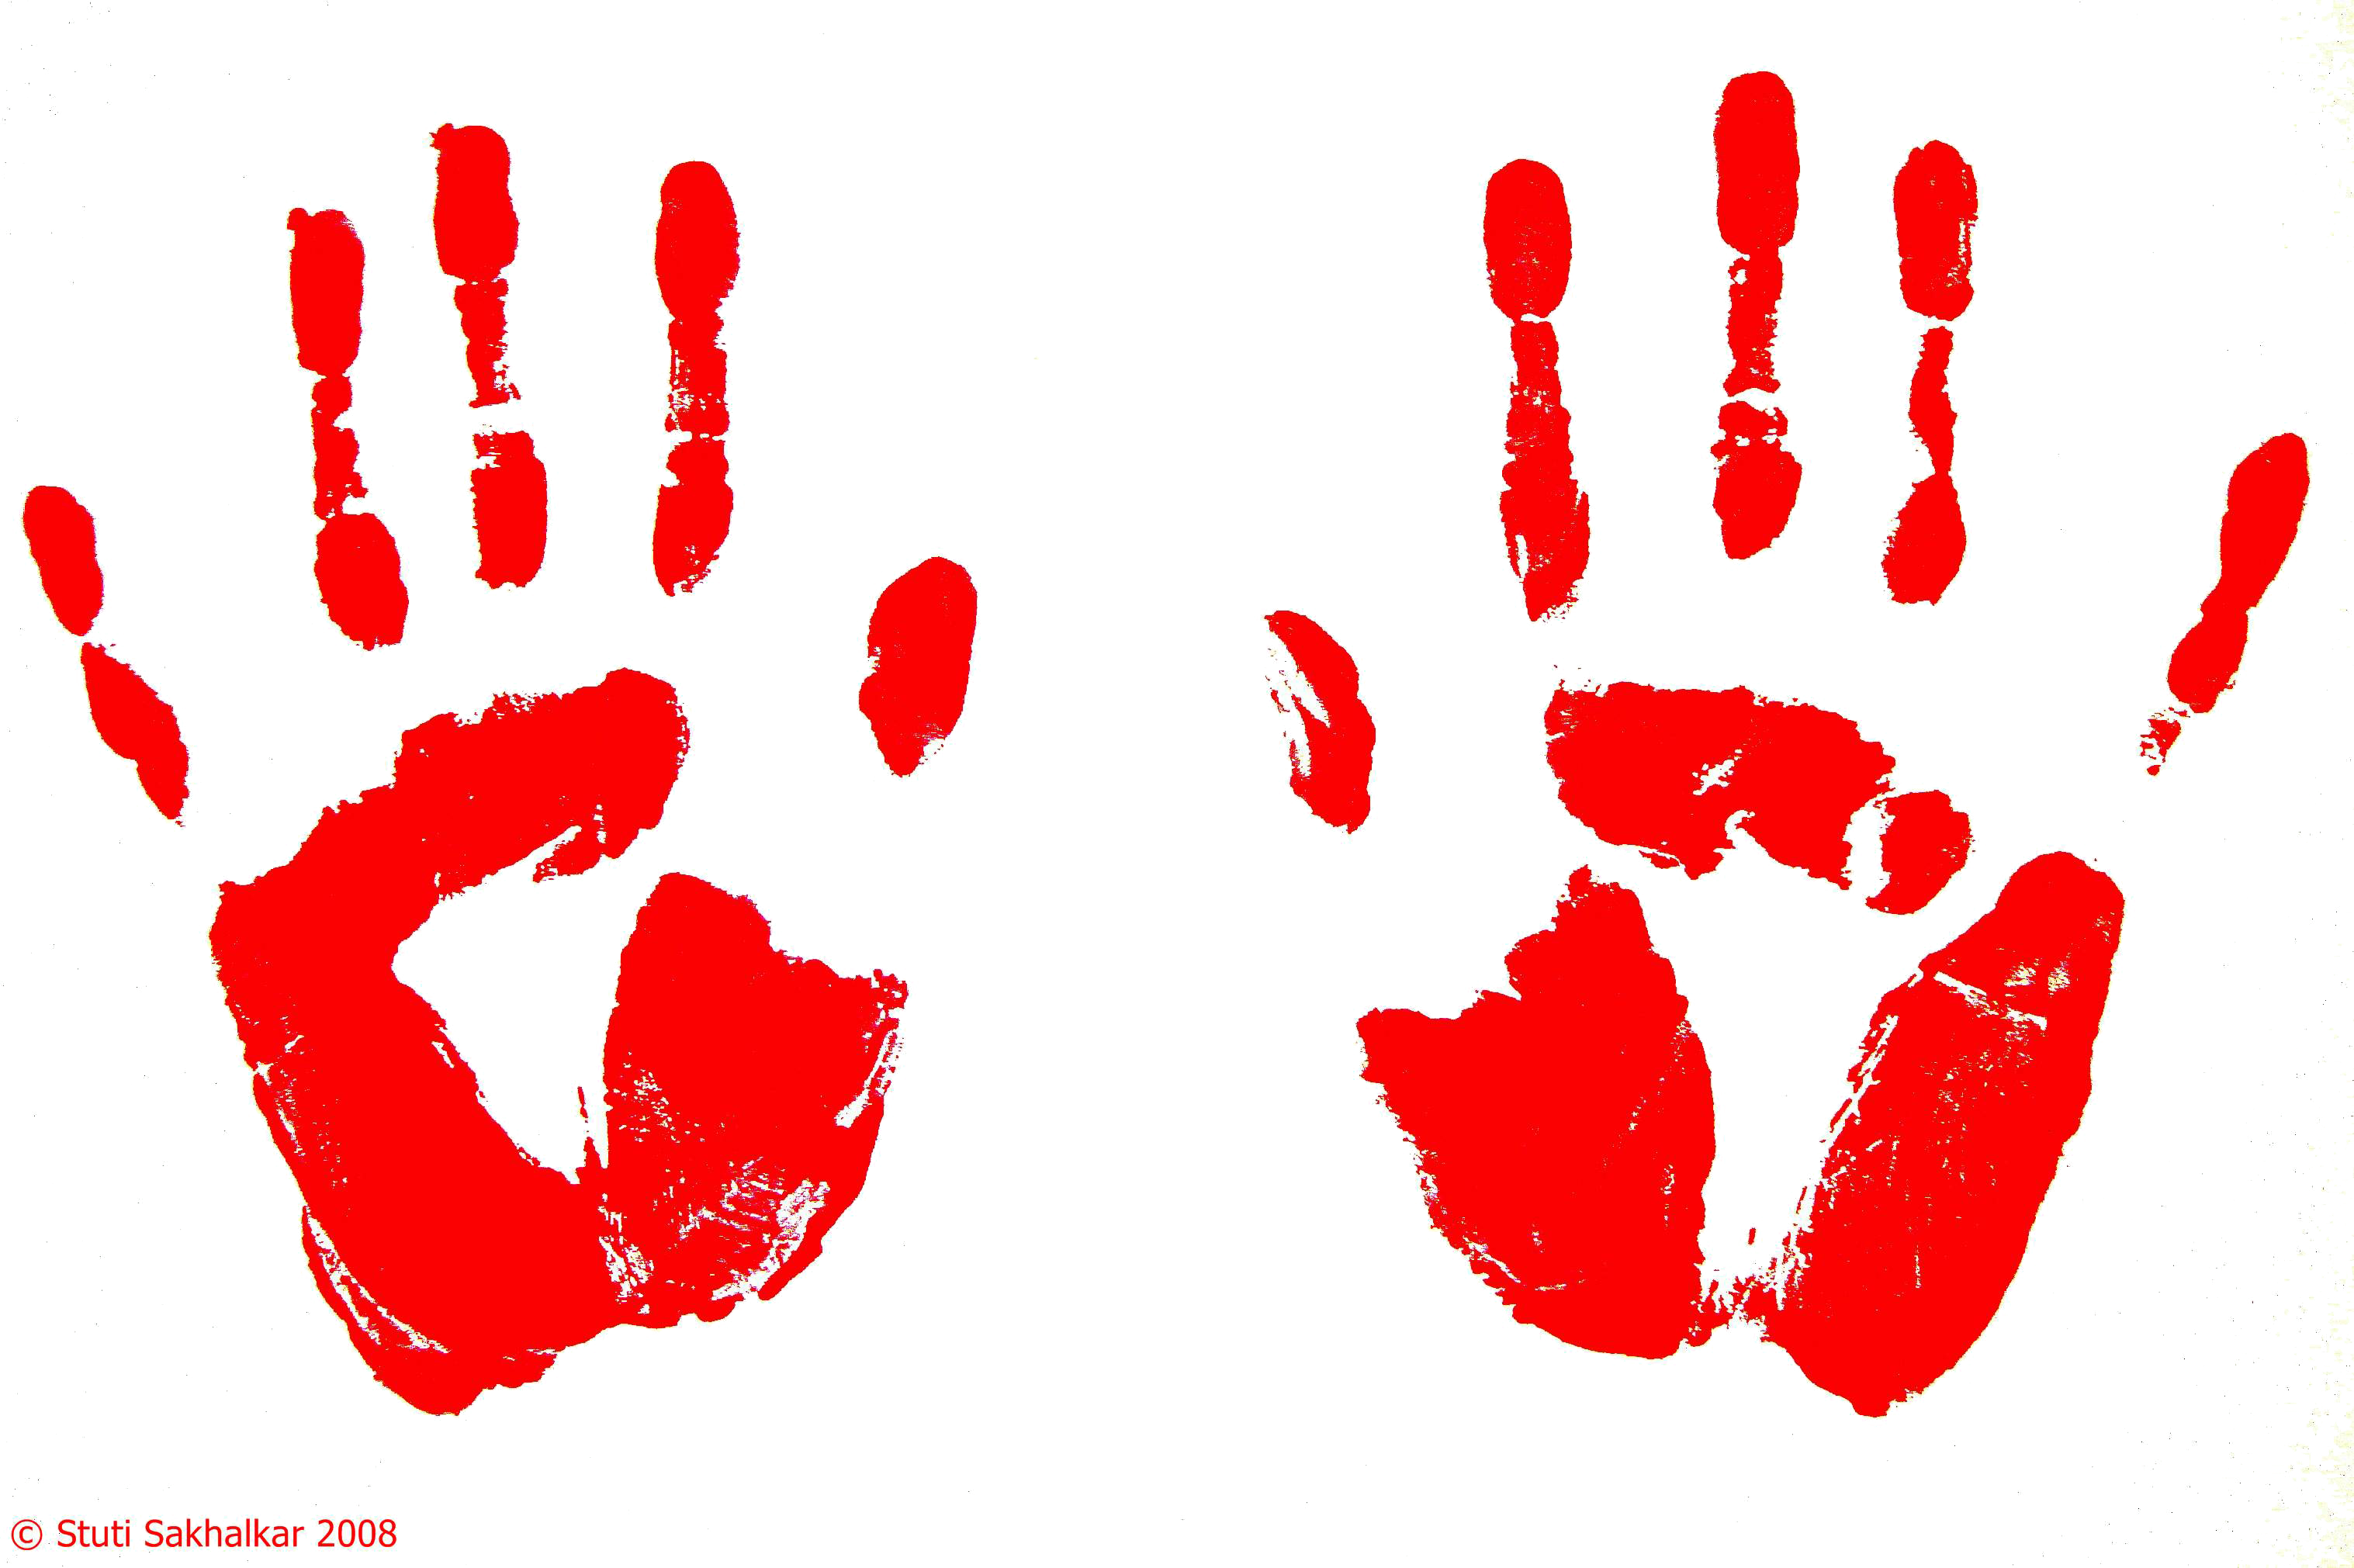 How to Make Cheap Last-Minute Halloween Window Decoration #halloween #decoration #decor #cheap #last-minute #spooky #scary #creepy #diy #template #stencil #example #hands #palms #fakeblood #blood #handprints #print #red #window #walls #silhouette #silhouette